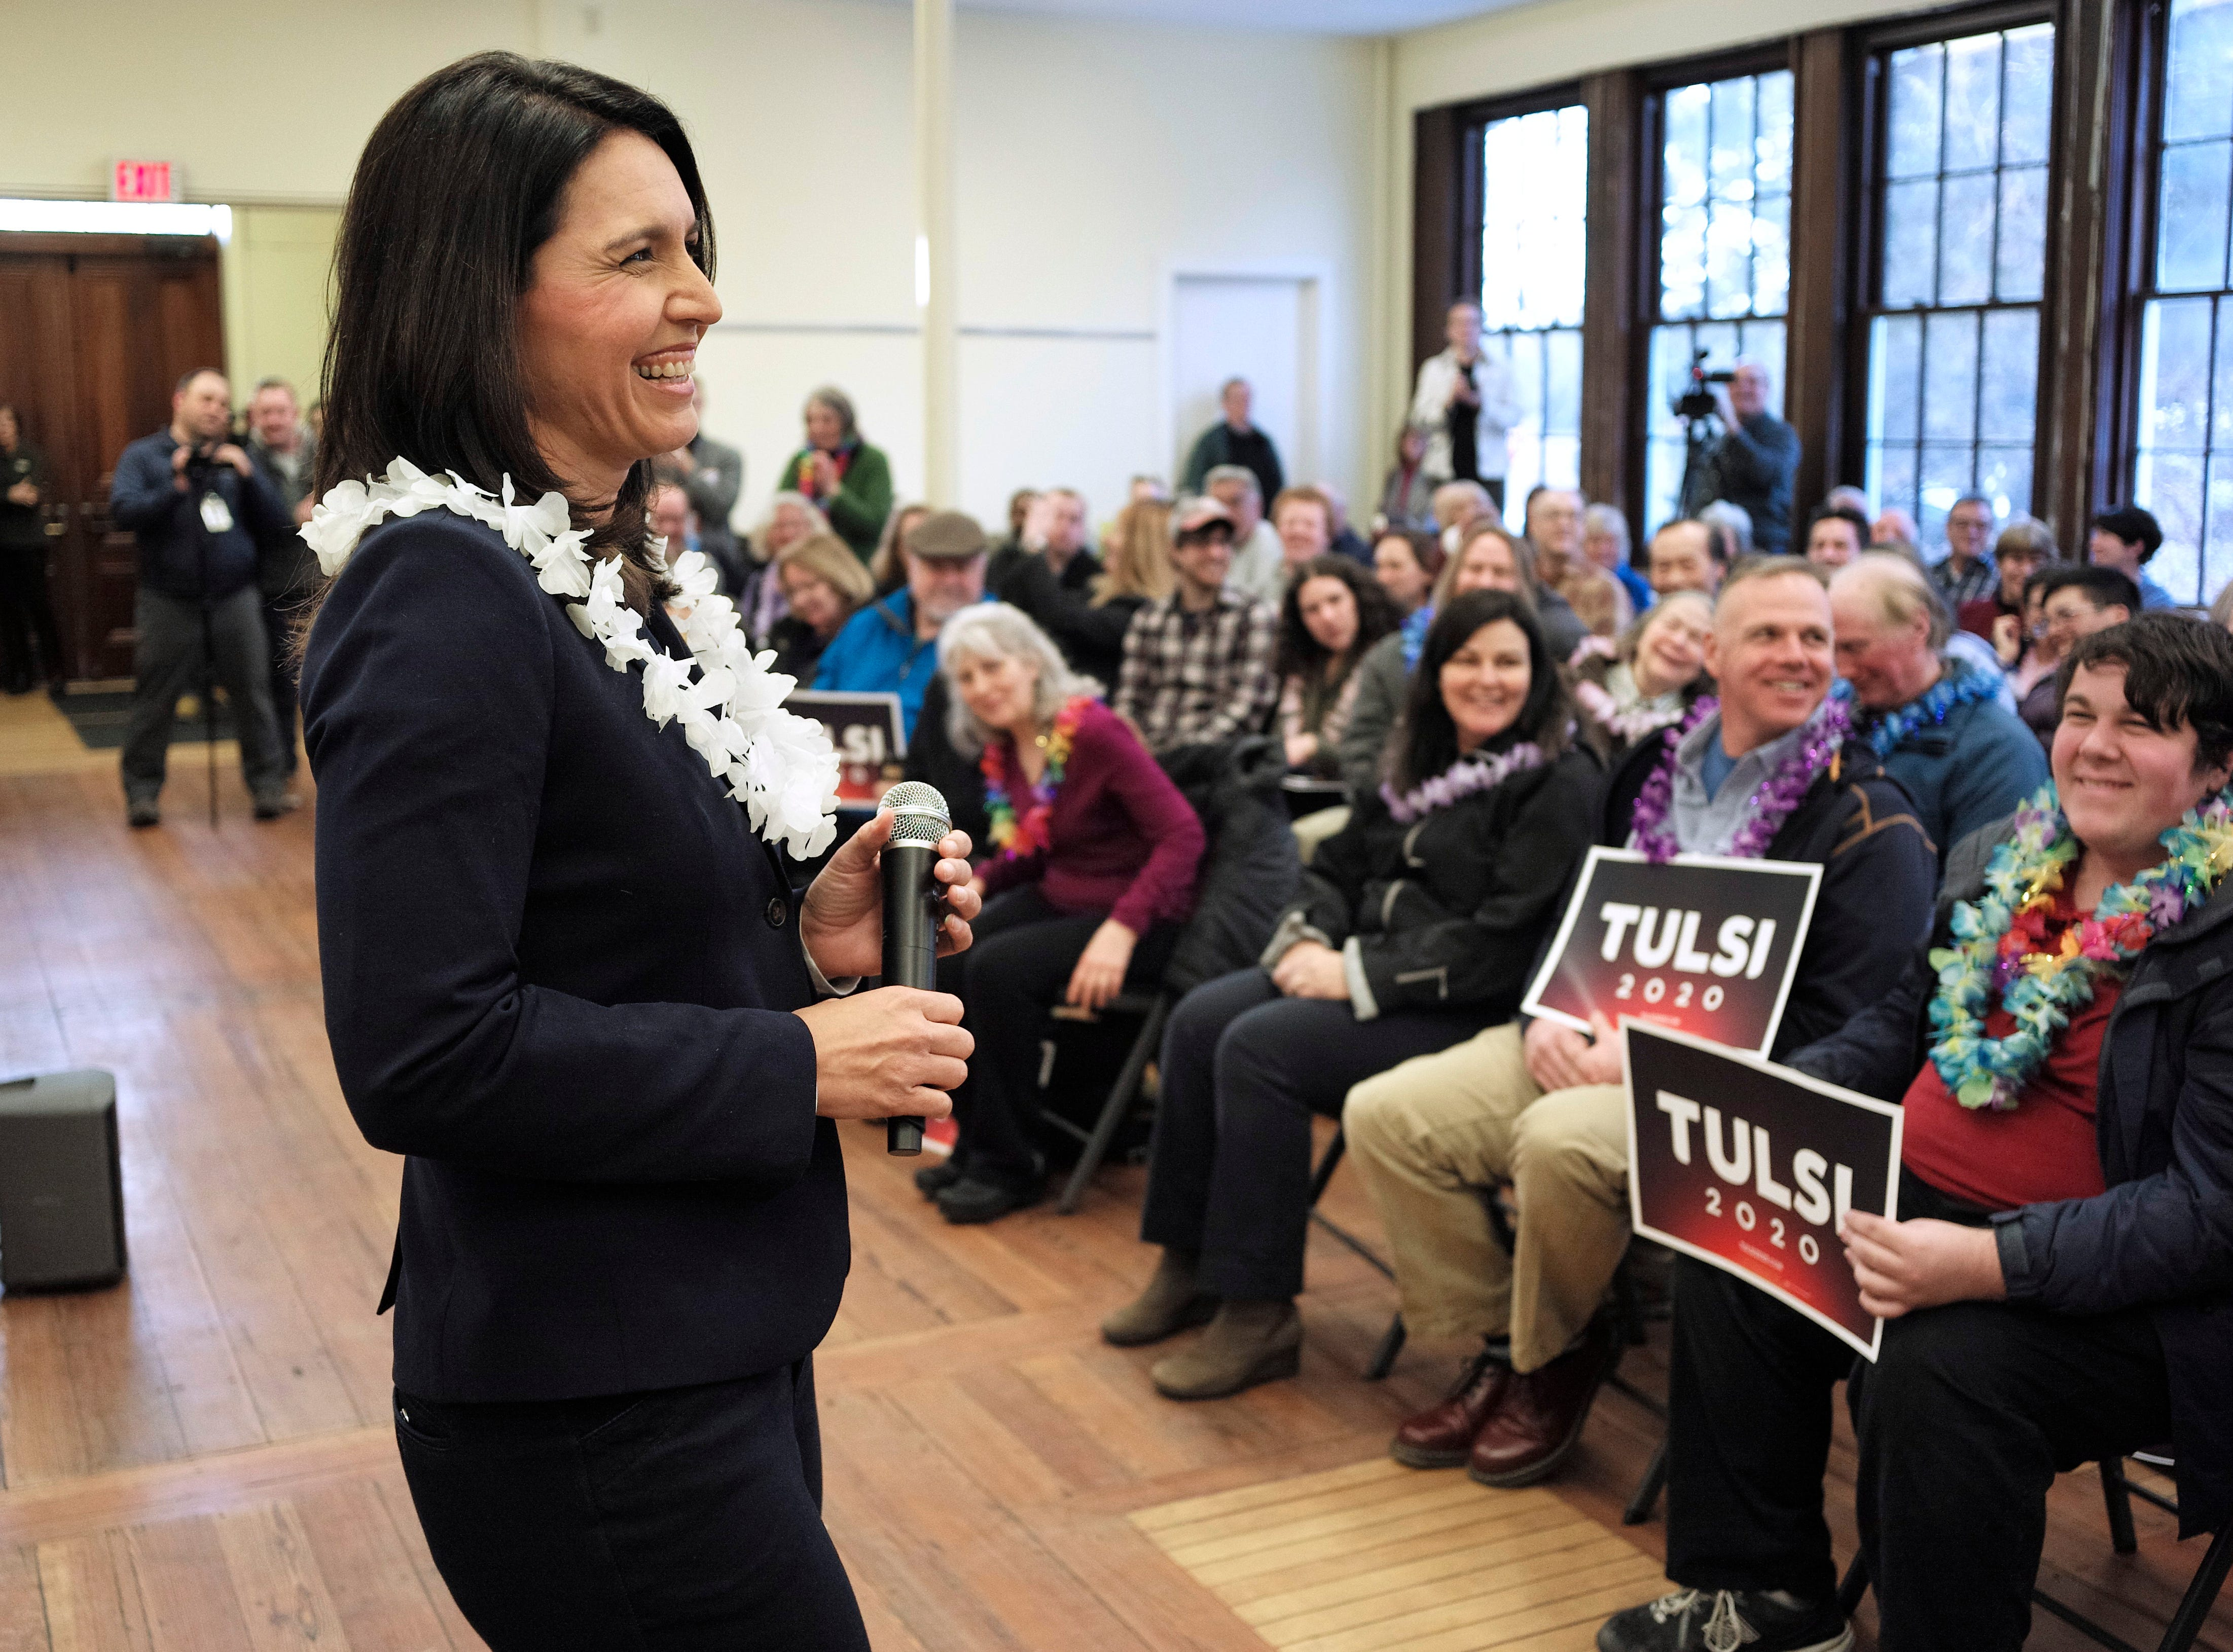 U.S. Rep. Tulsi Gabbard, D-Hawaii announced she was running for president on Feb. 2, 2019.